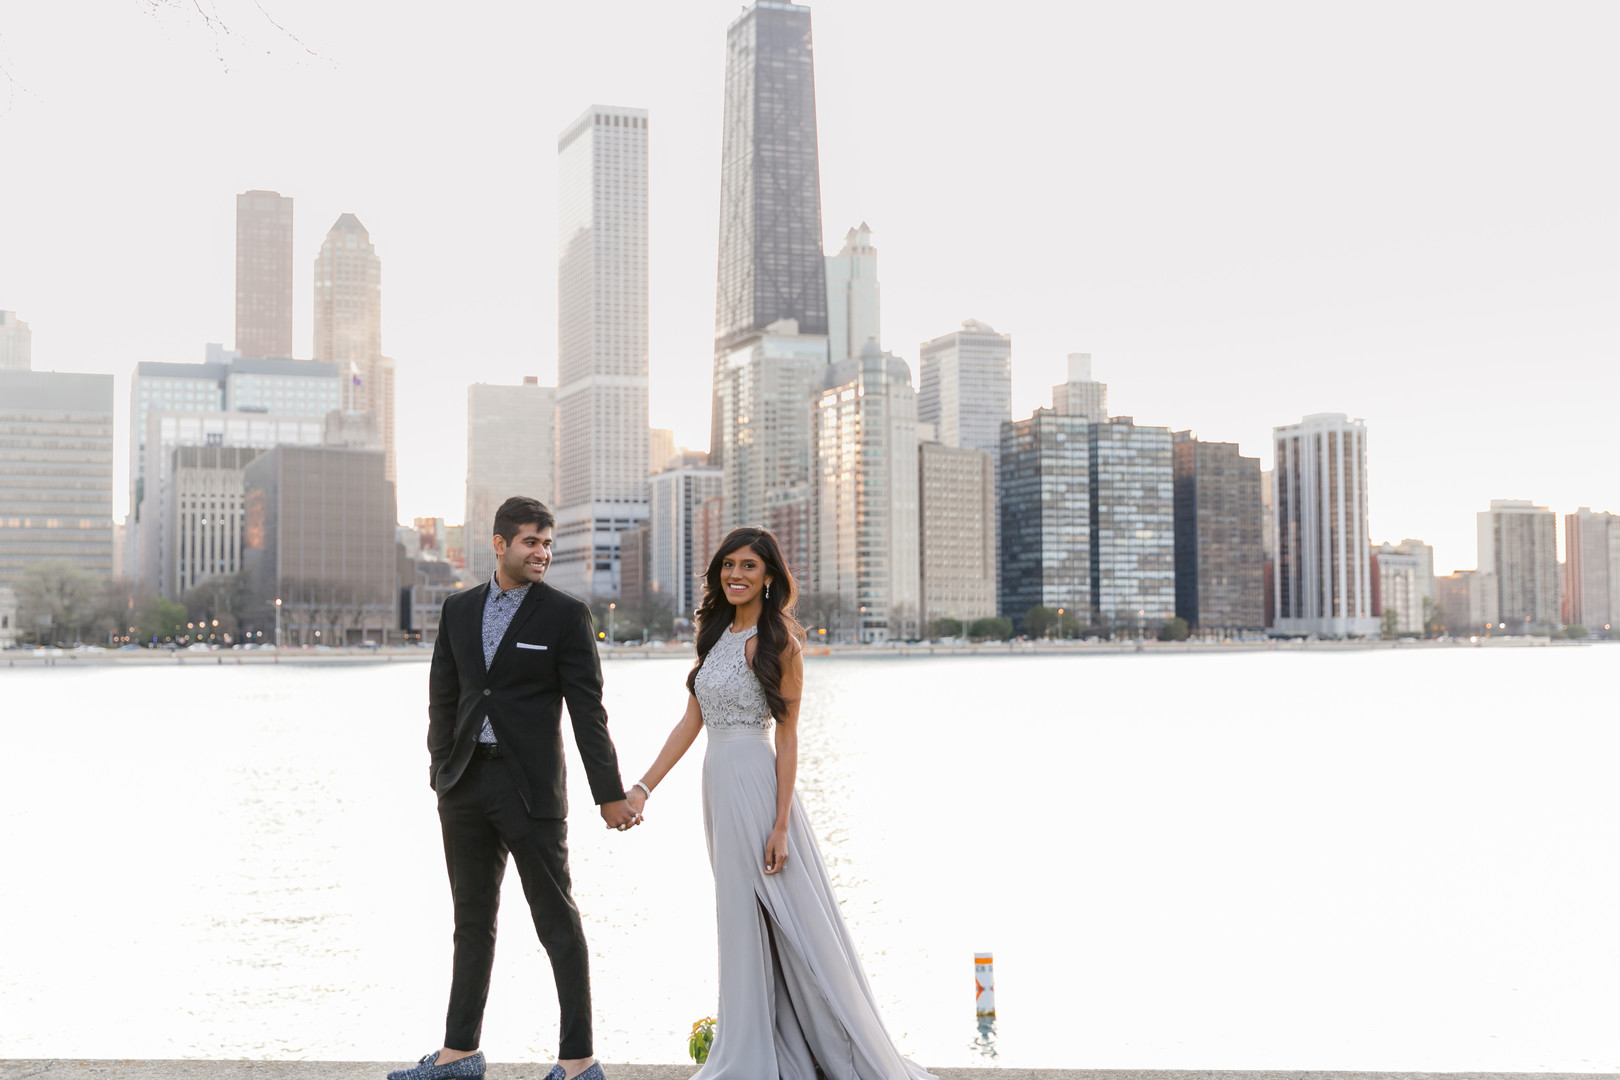 Intimate civil ceremony Chicago wedding in Olive Park captured by Janet D Photography. Find more wedding inspiration at CHItheeWED.com!